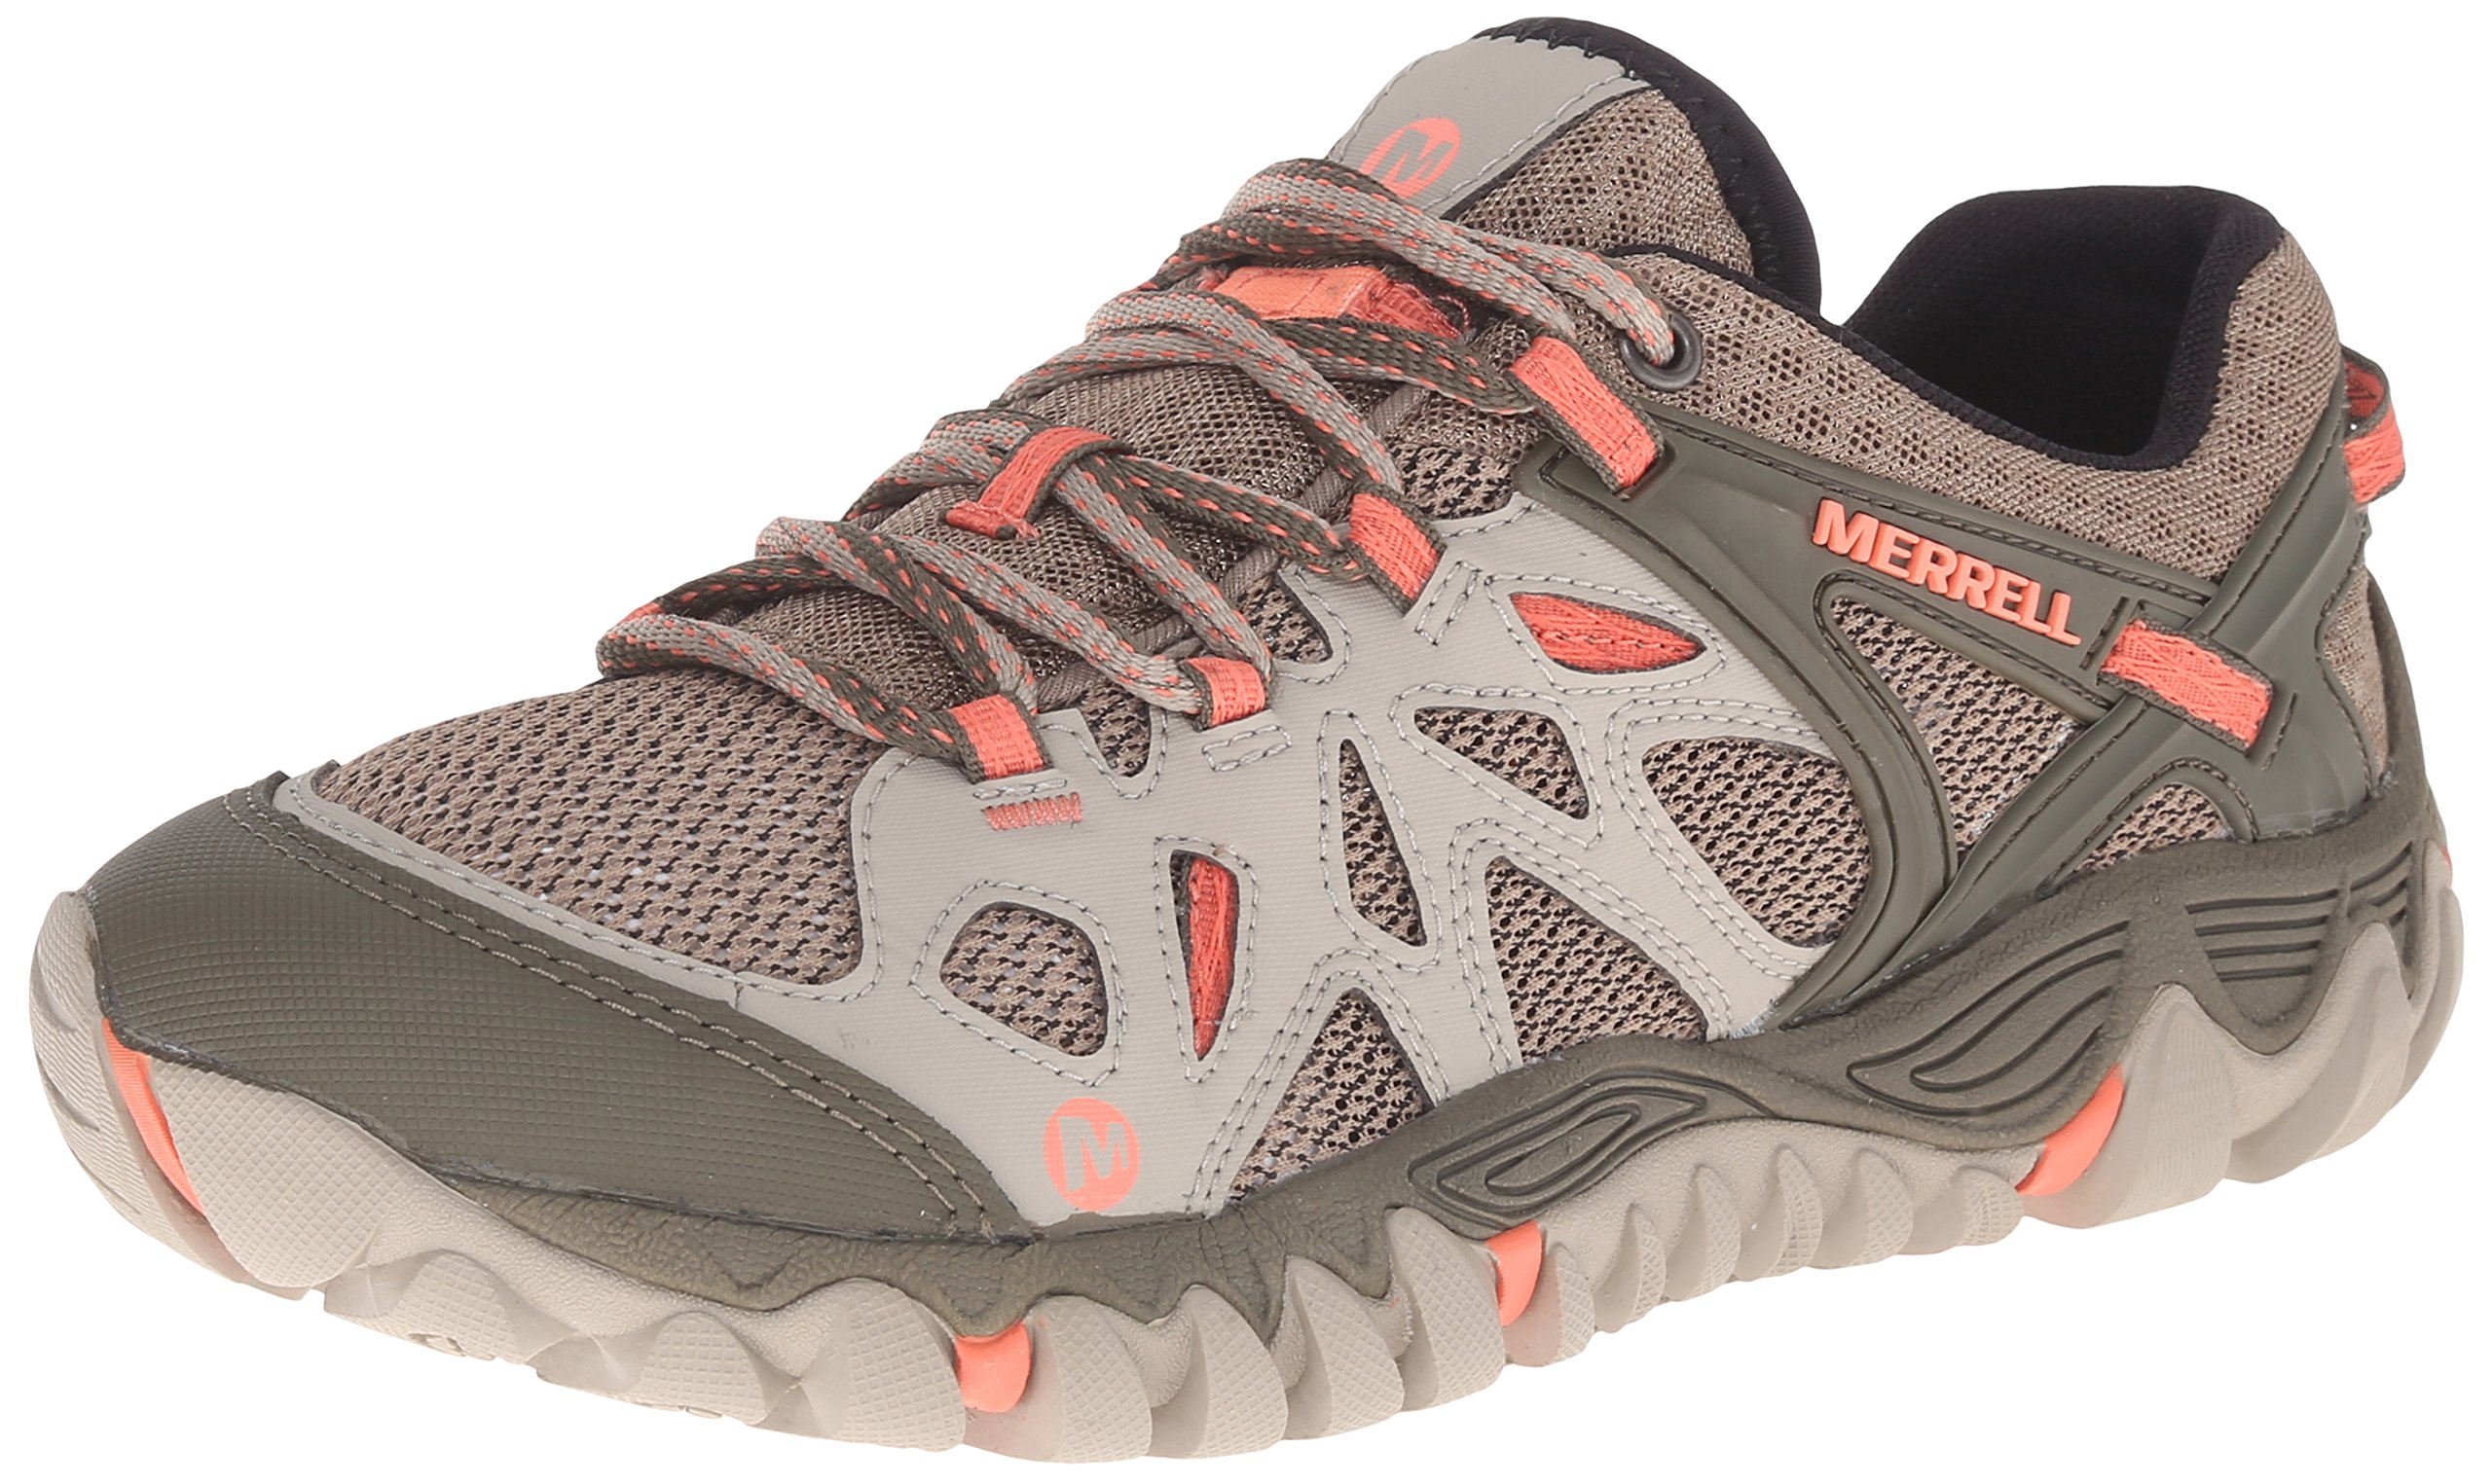 Merrell Women's All Out Blaze Aero Sport Hiking Water Shoe, Beige/Khaki, 7 M US